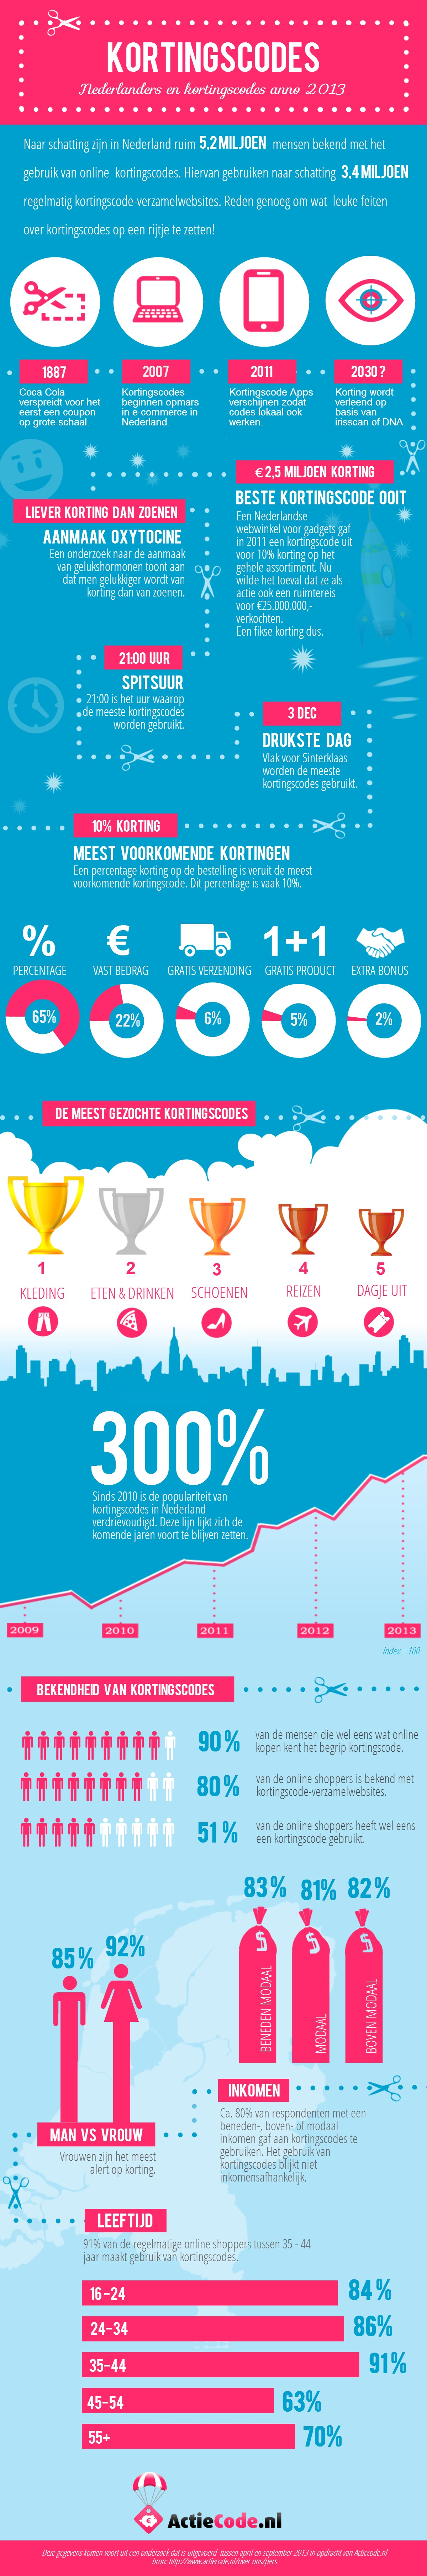 Kortingscodes-anno-2013-infographic